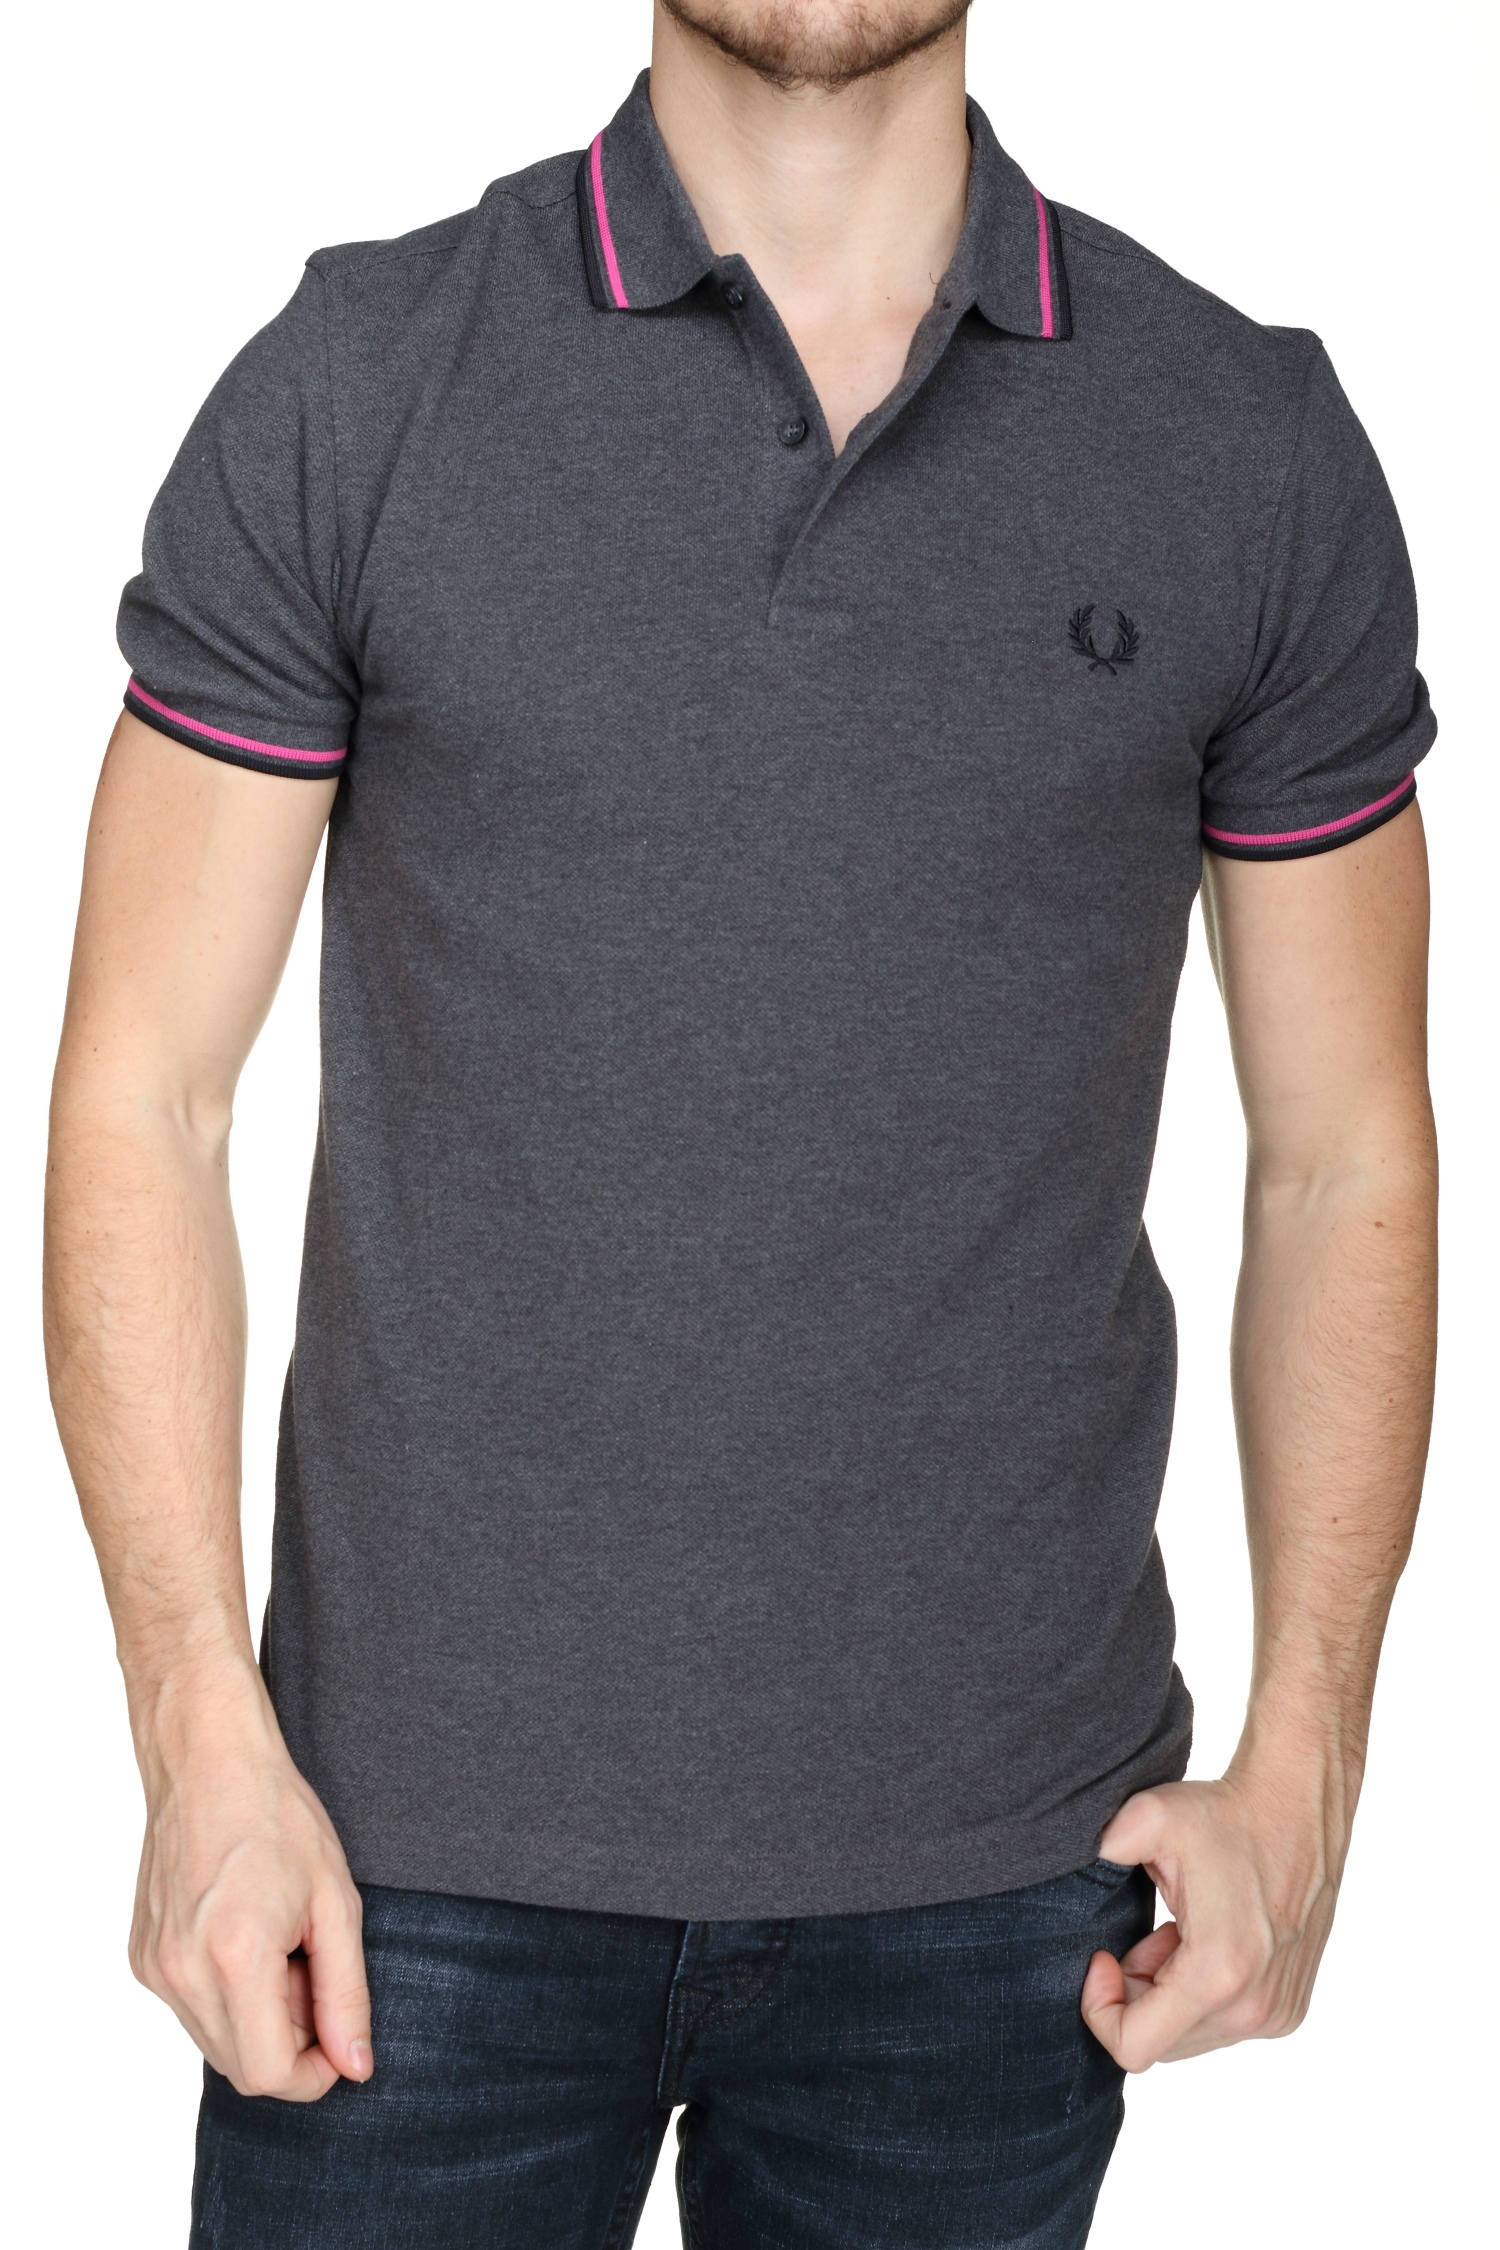 https://www.leadermode.com/182335/fred-perry-fpmm3600-829-graphite-marl.jpg